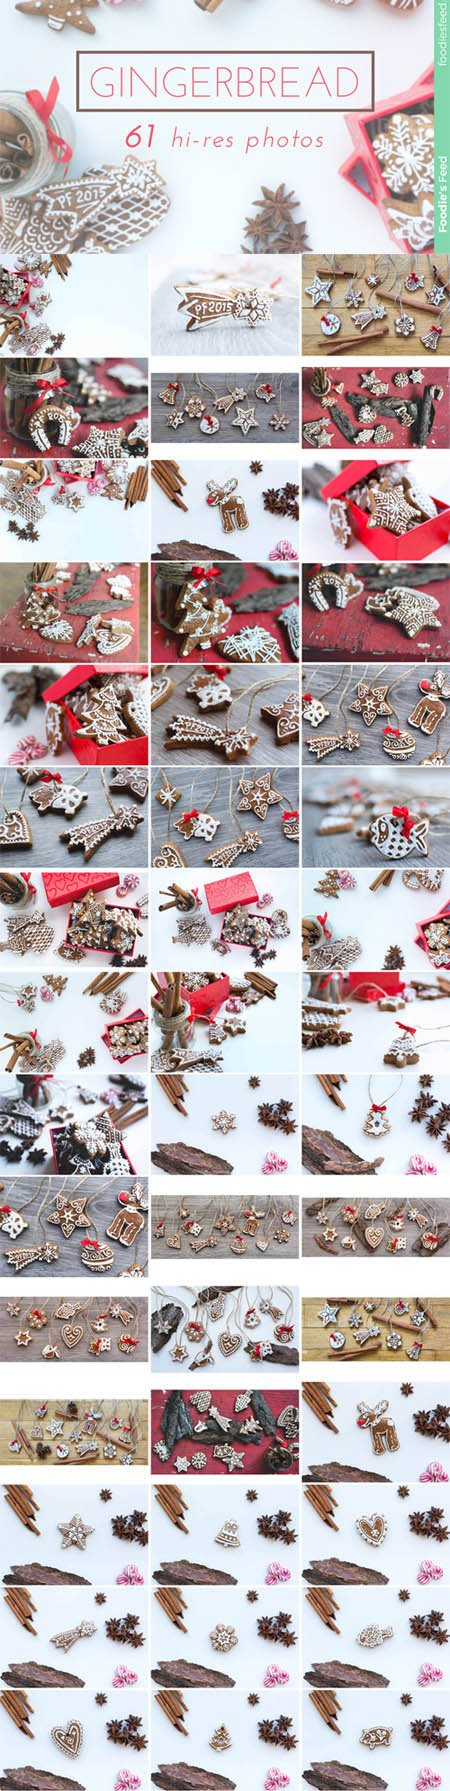 GINGERBREAD - Premium Photo Package - Creativemarket 139493